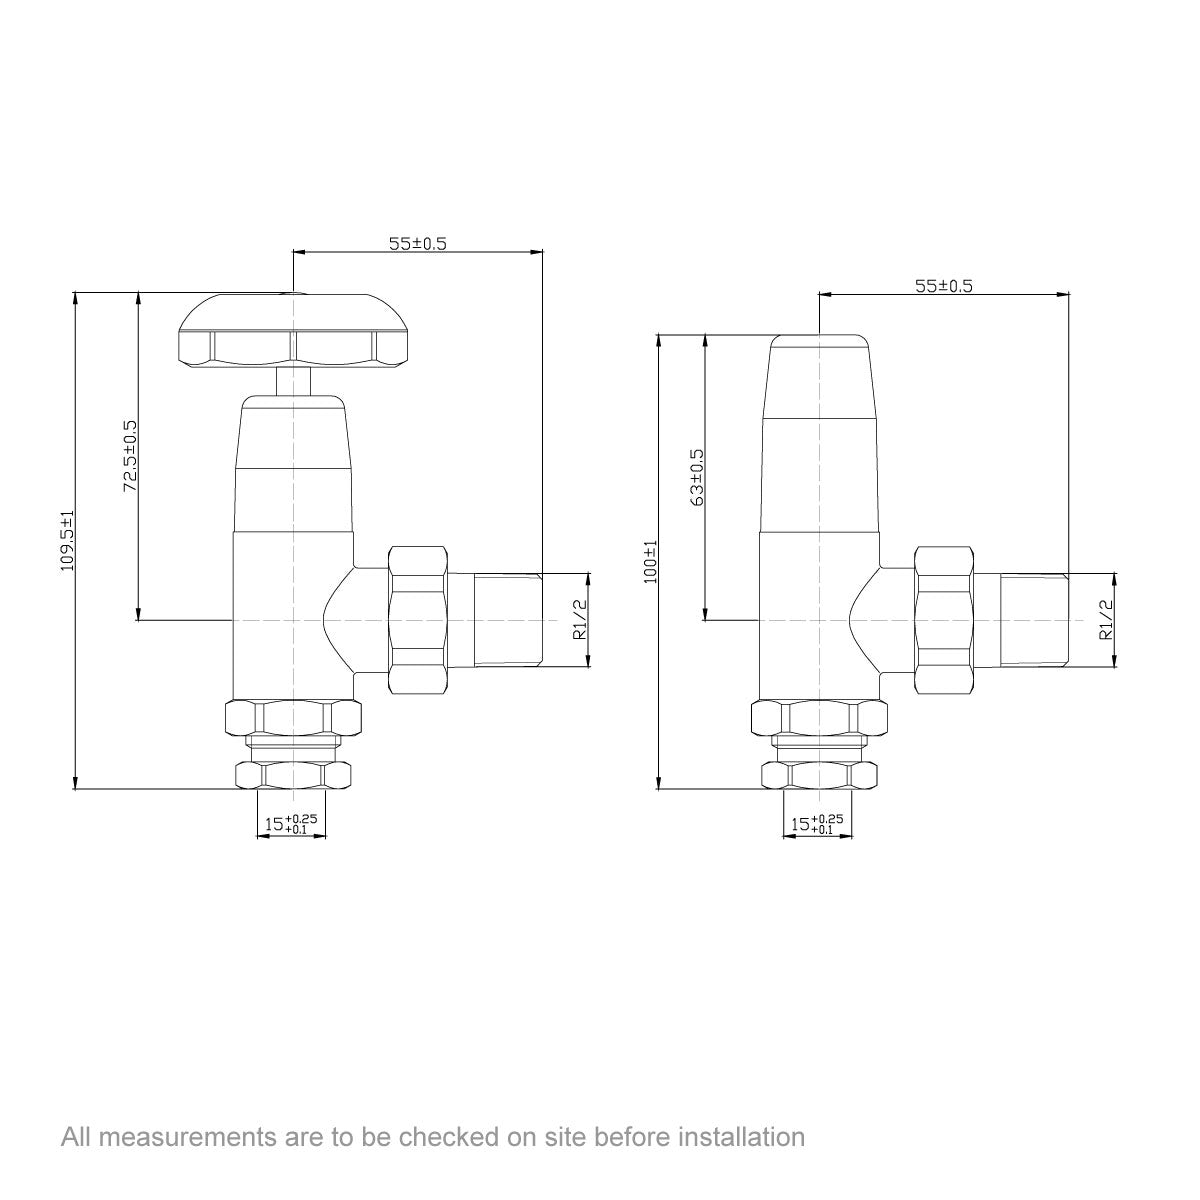 Dimensions for The Bath Co. Traditional angled radiator valves with black handle